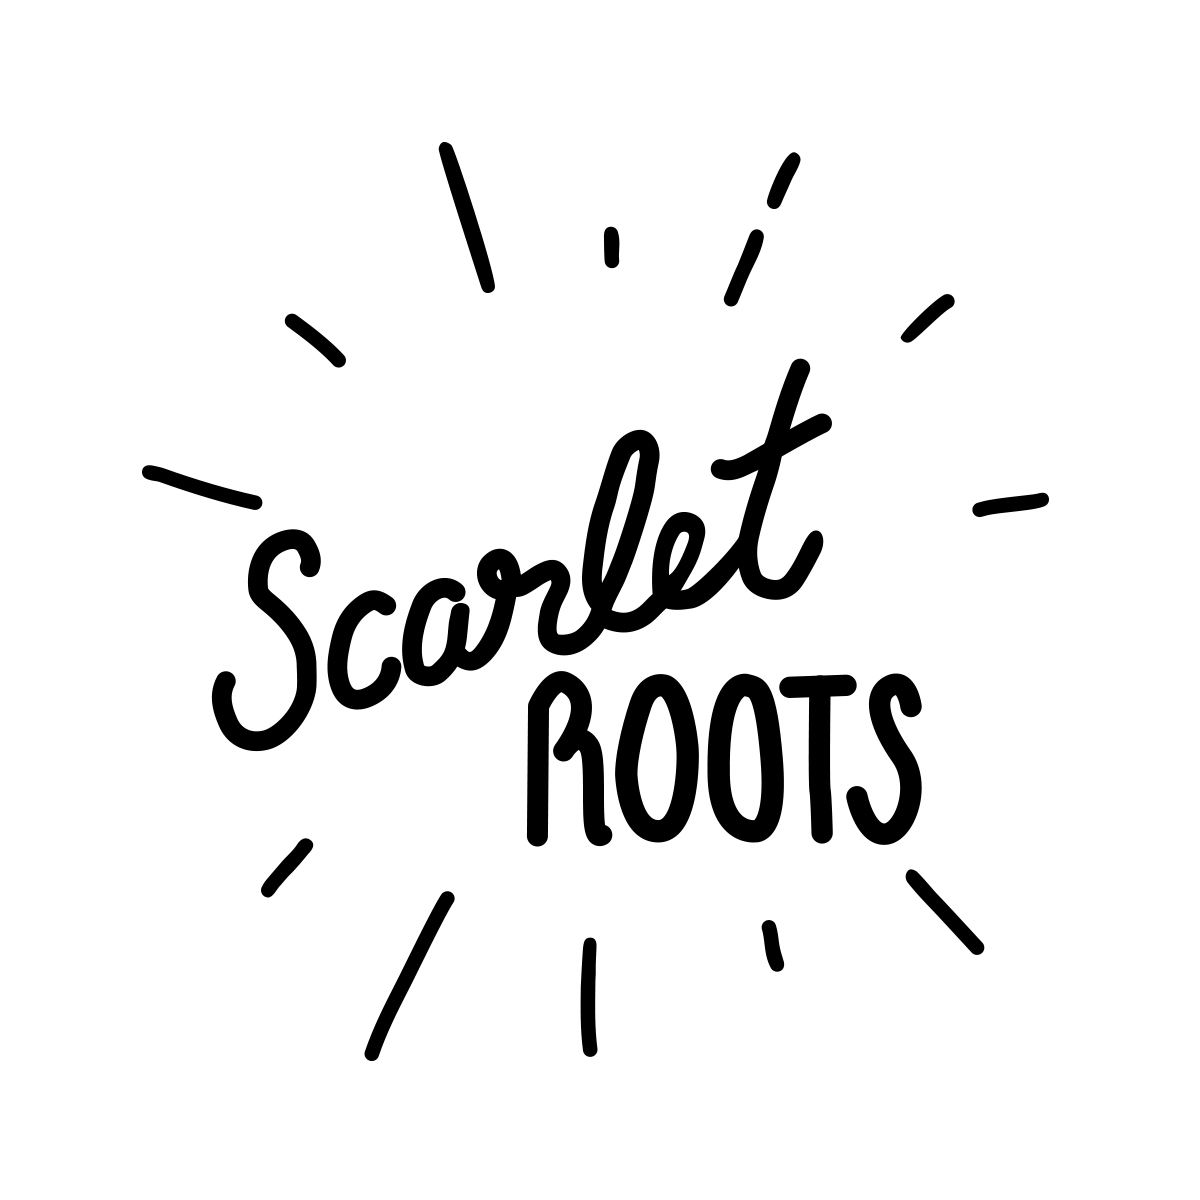 Scarlet Roots